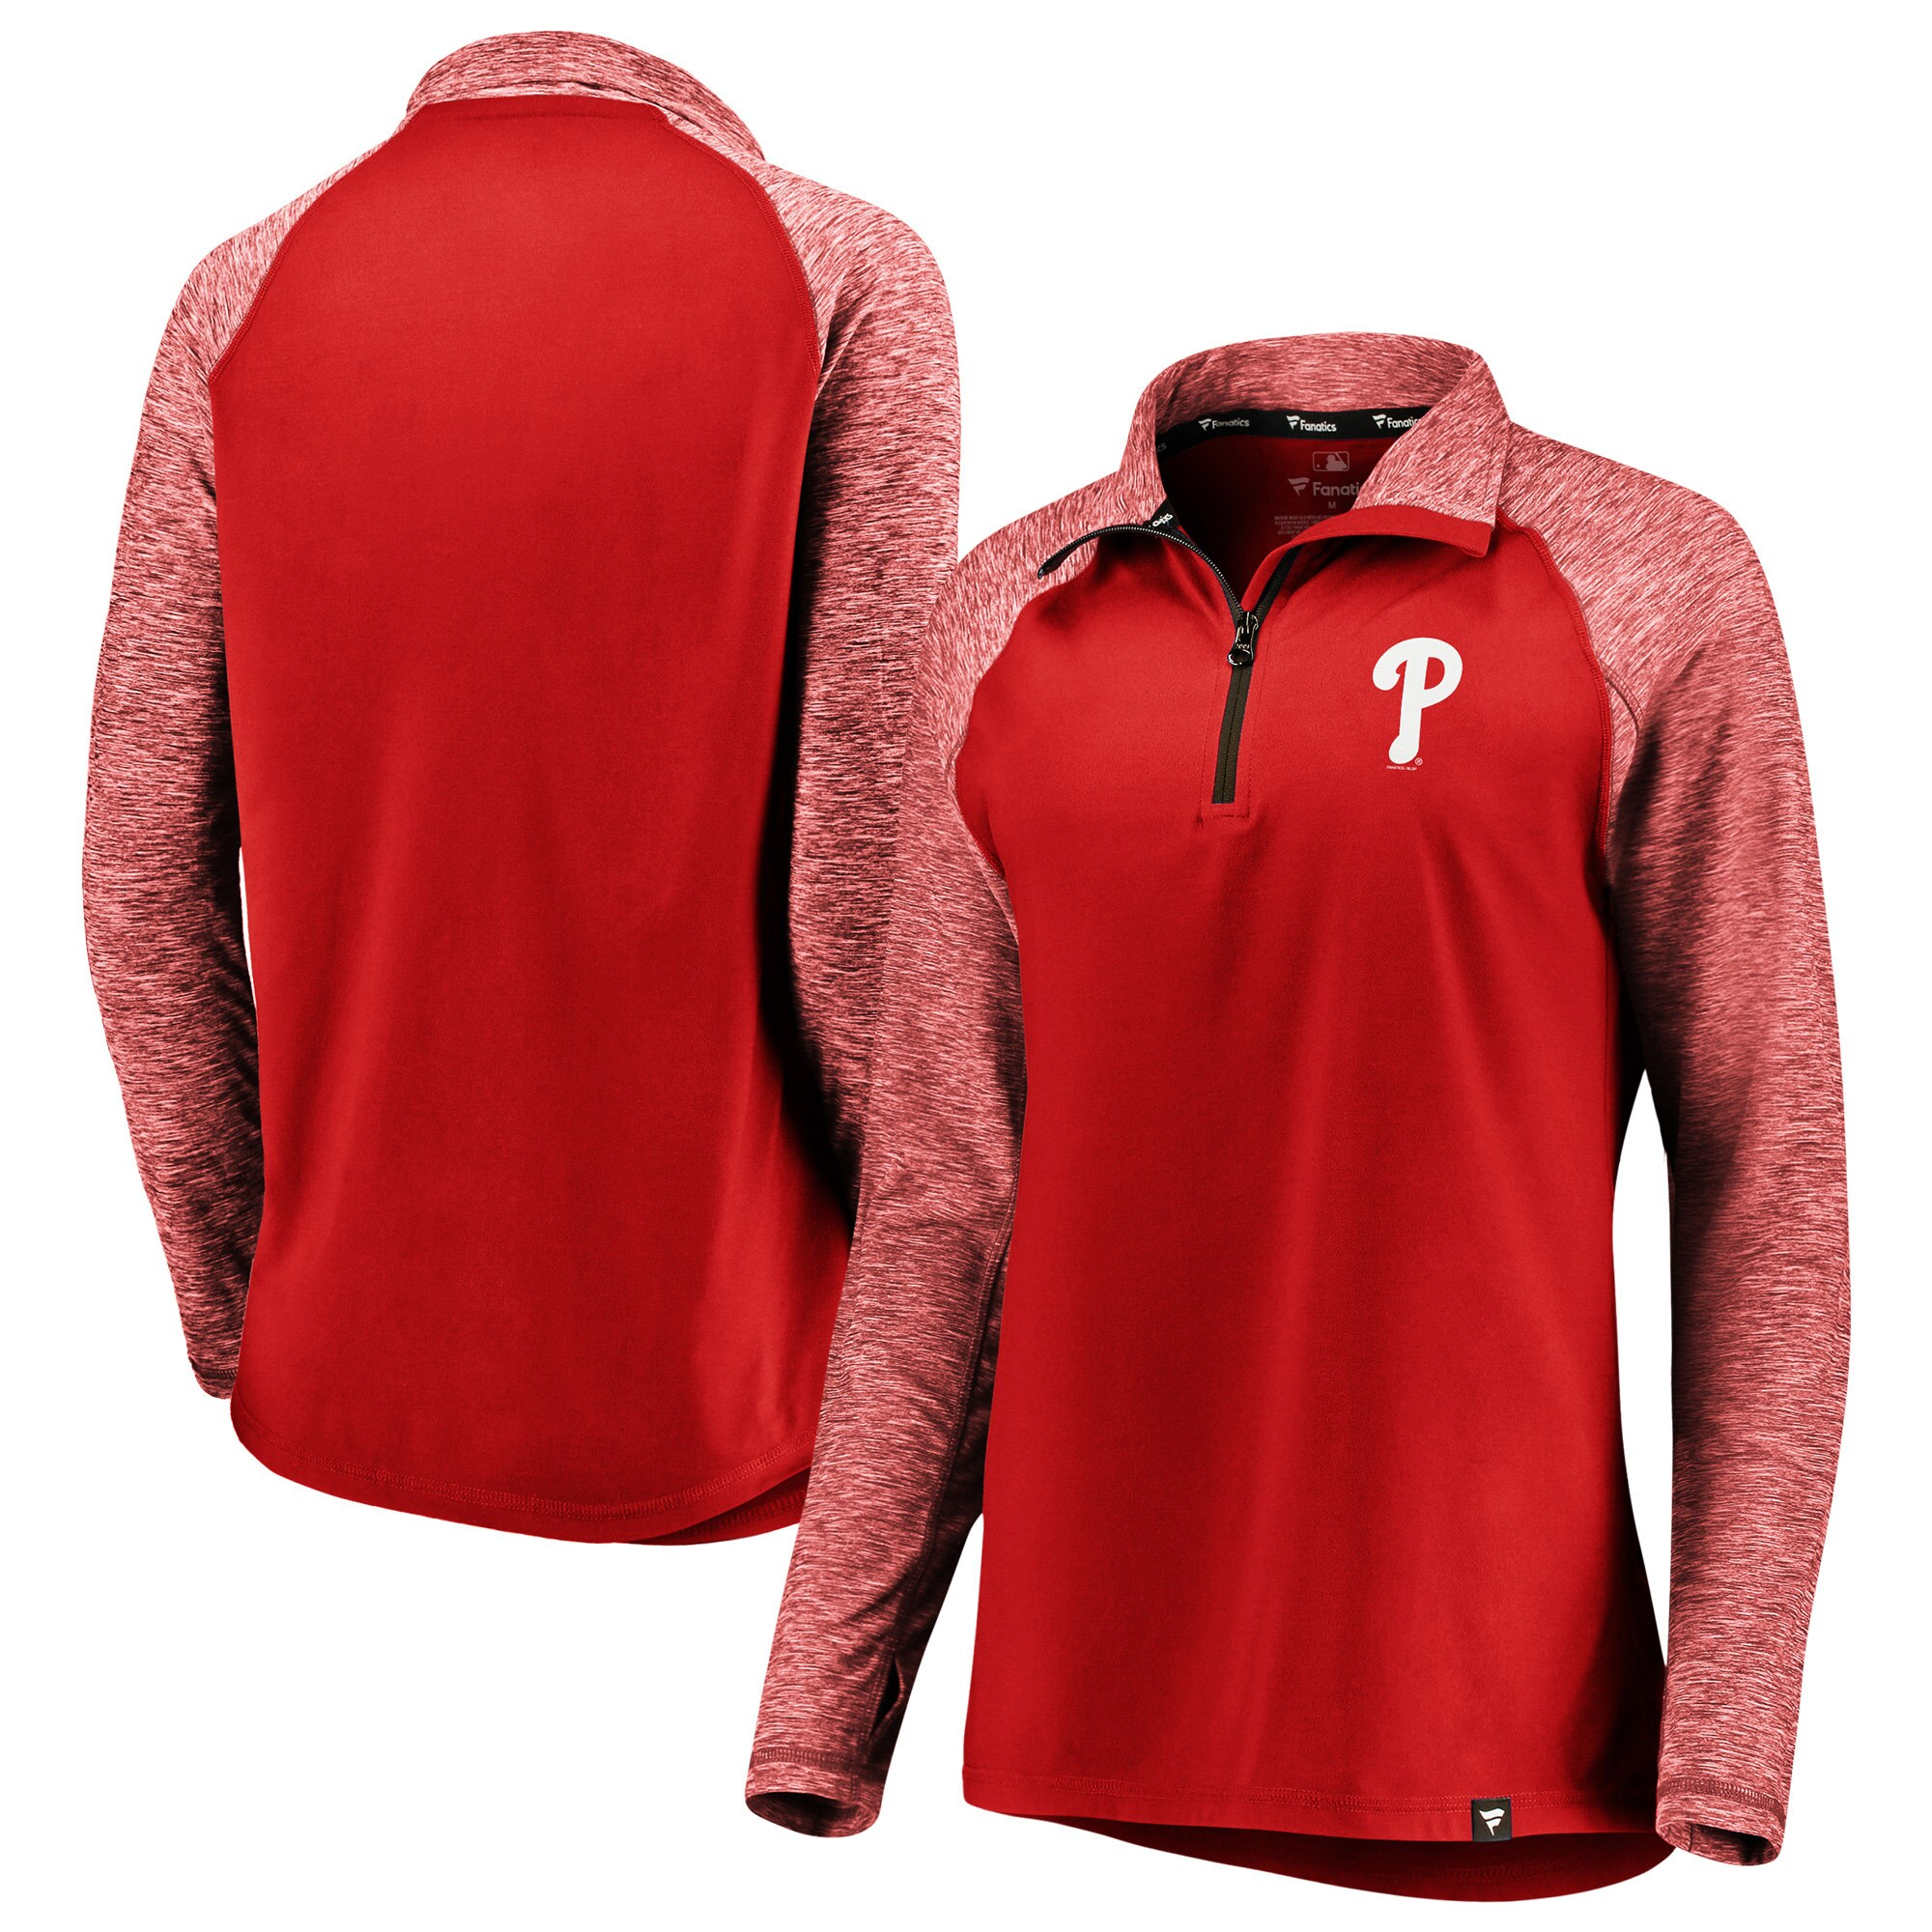 Philadelphia Phillies Fanatics Branded Women's Made to Move Raglan Sleeve Quarter-Zip Pullover Jacket - Red